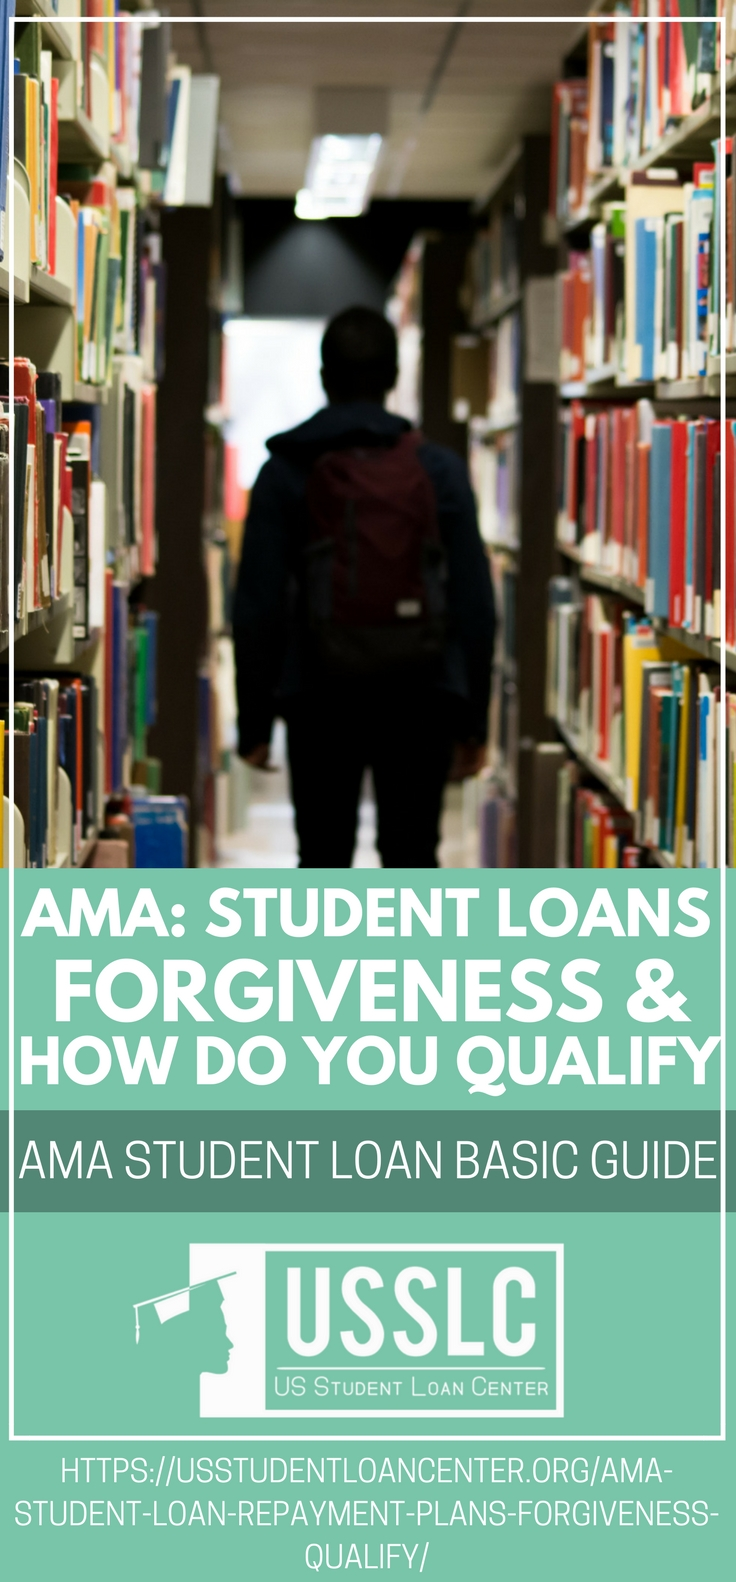 PLACARD | AMA: Student Loan Repayment Plans, Forgiveness & How Do You Qualify